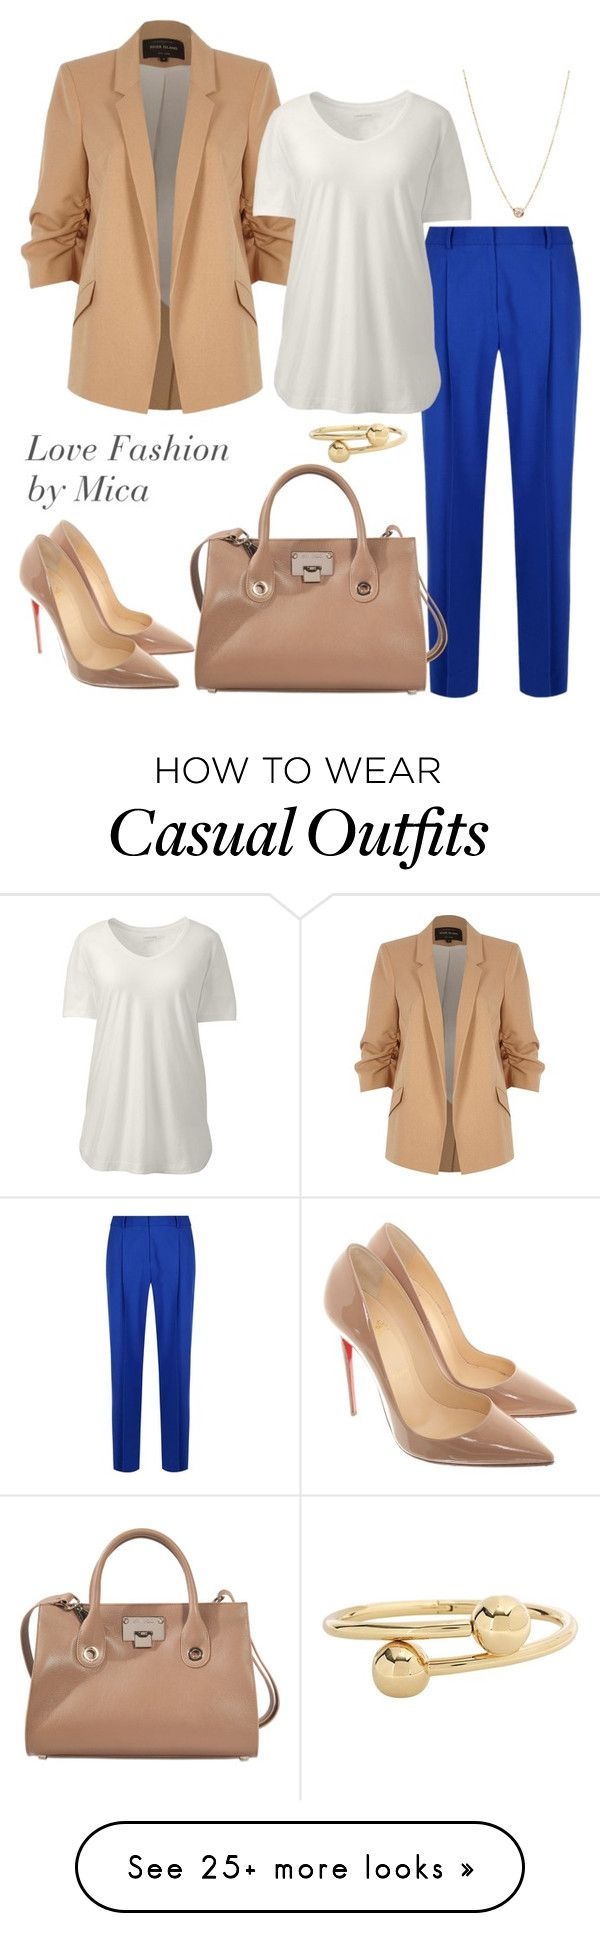 """sofisticada casual"" by micaeuuge on Polyvore featuring River Island, Diane Von Furstenberg, Lands' End, Zoë Chicco, J.W. Anderson, Christian Louboutin, Jimmy Choo and plus size clothing"